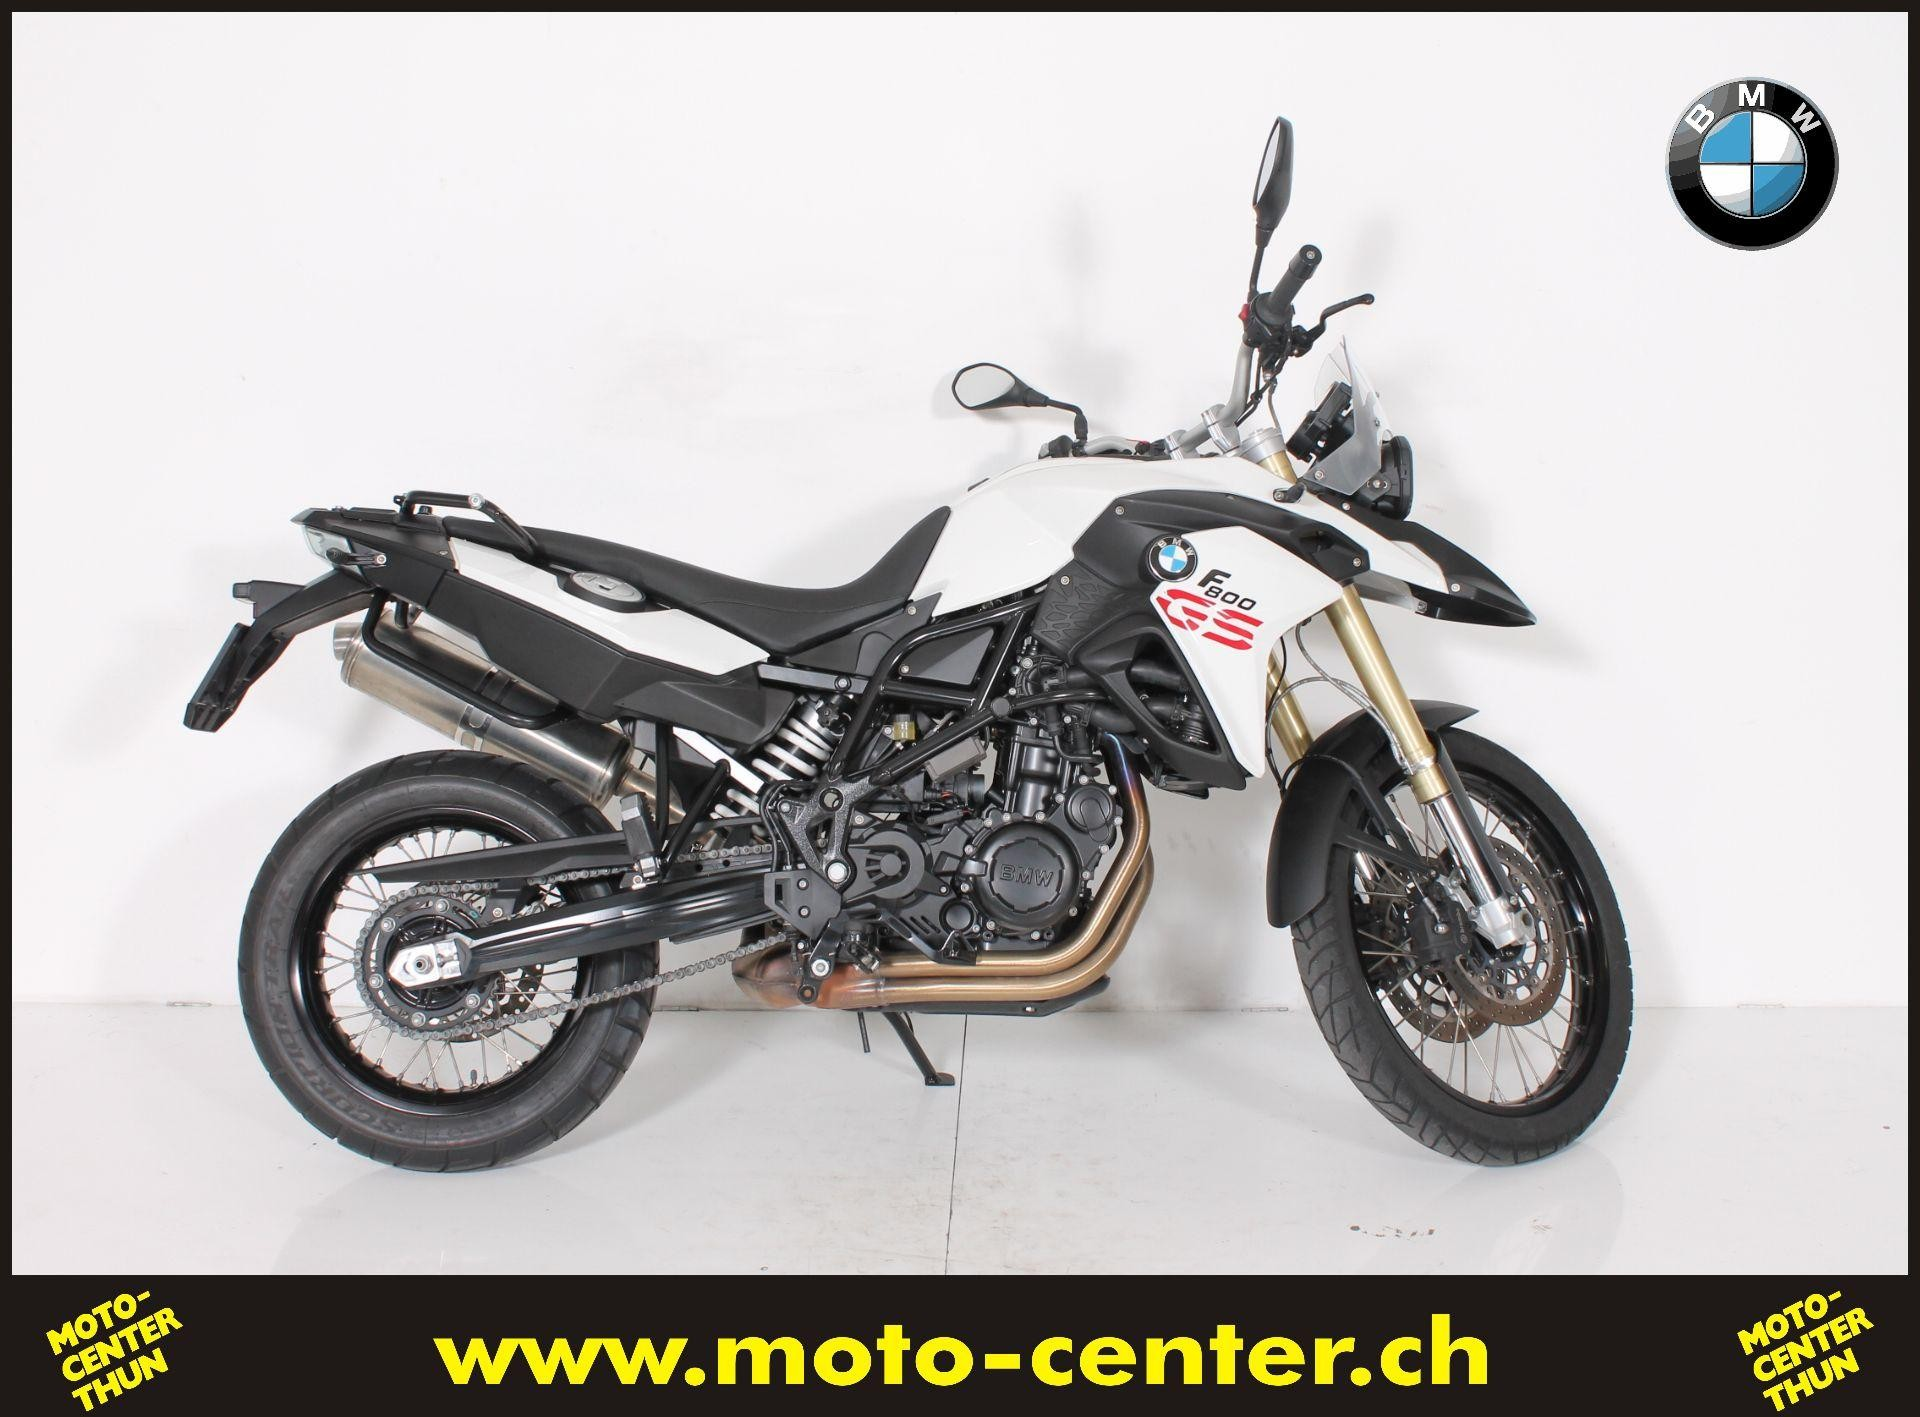 motorrad occasion kaufen bmw f 800 gs moto center thun steffisburg id 7397901 zeile 17. Black Bedroom Furniture Sets. Home Design Ideas